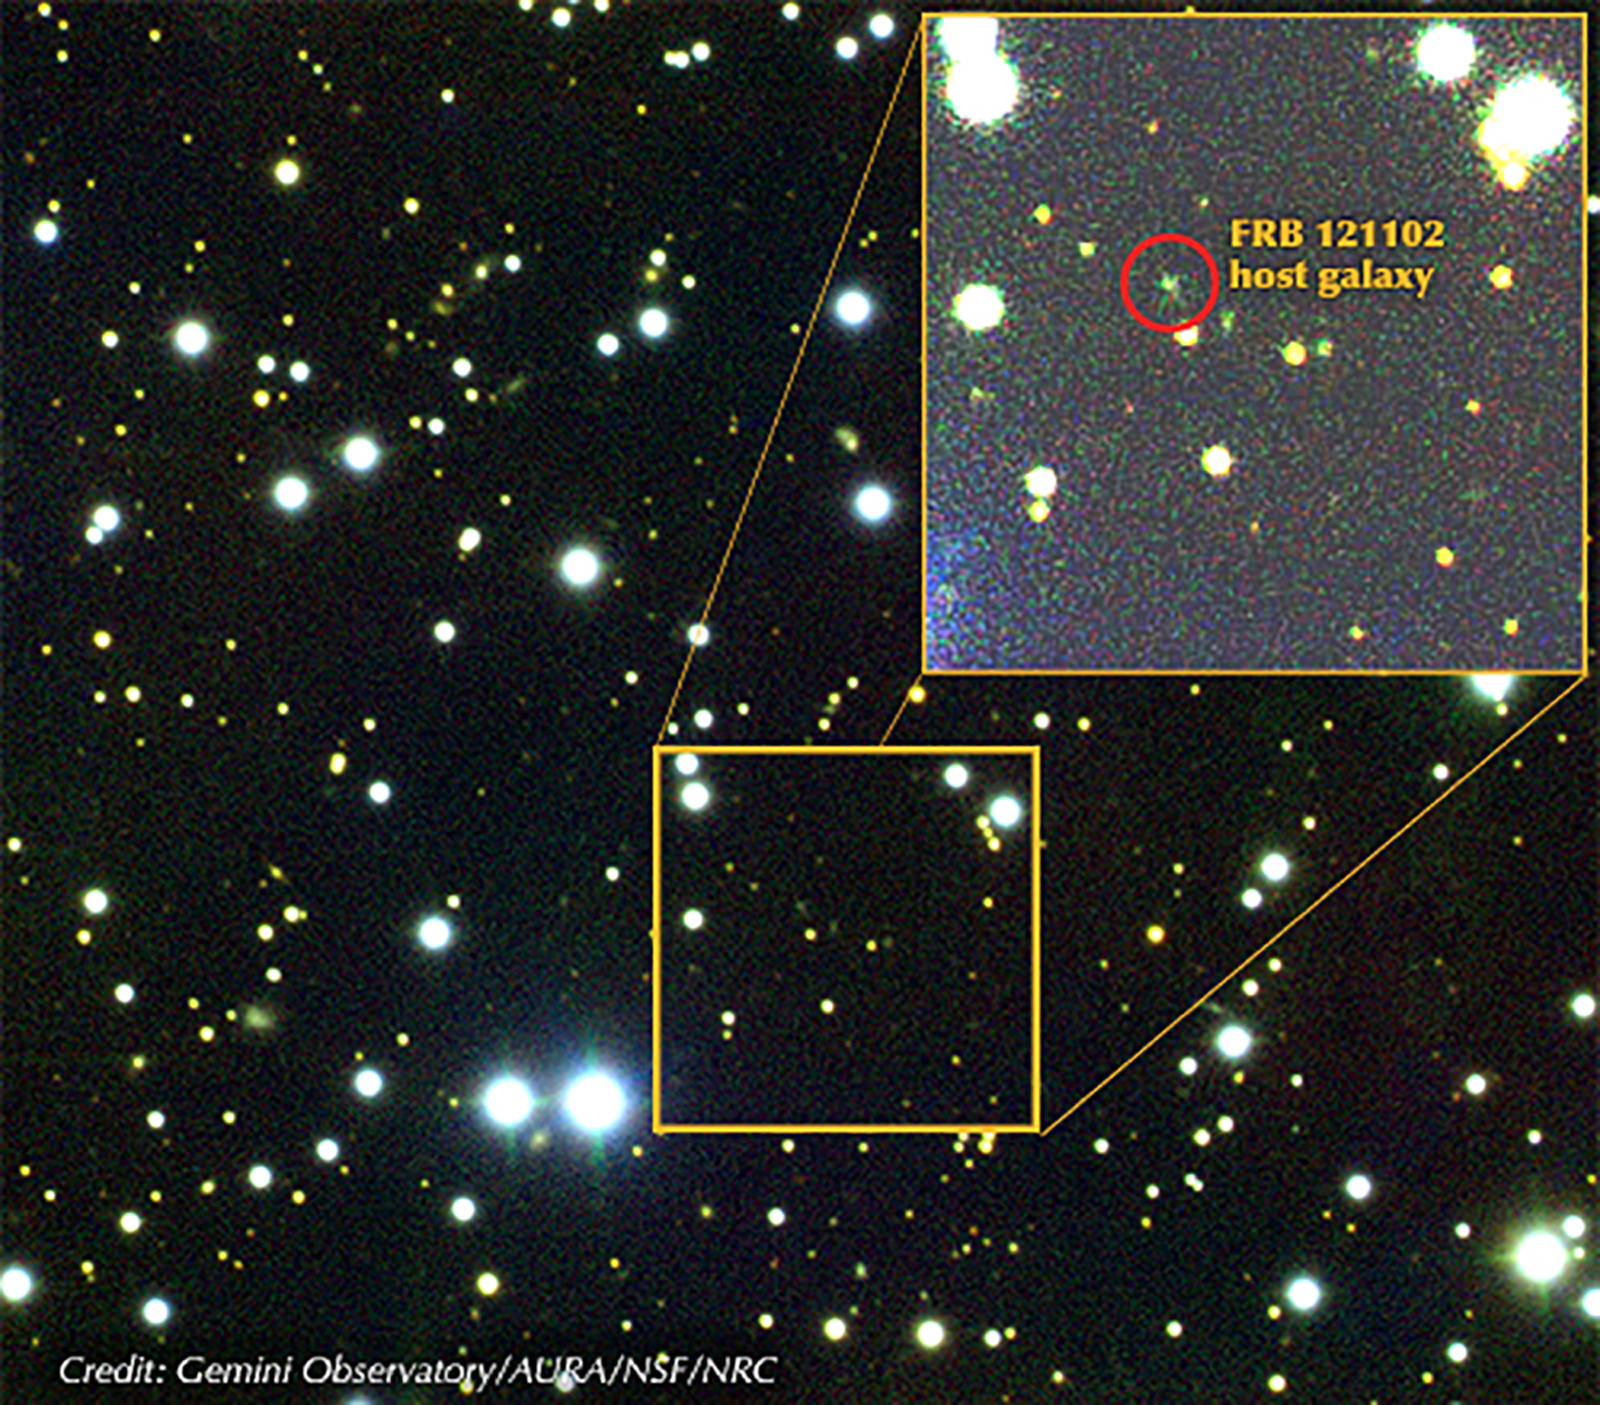 The location of the dwarf galaxy sending out fast radio bursts